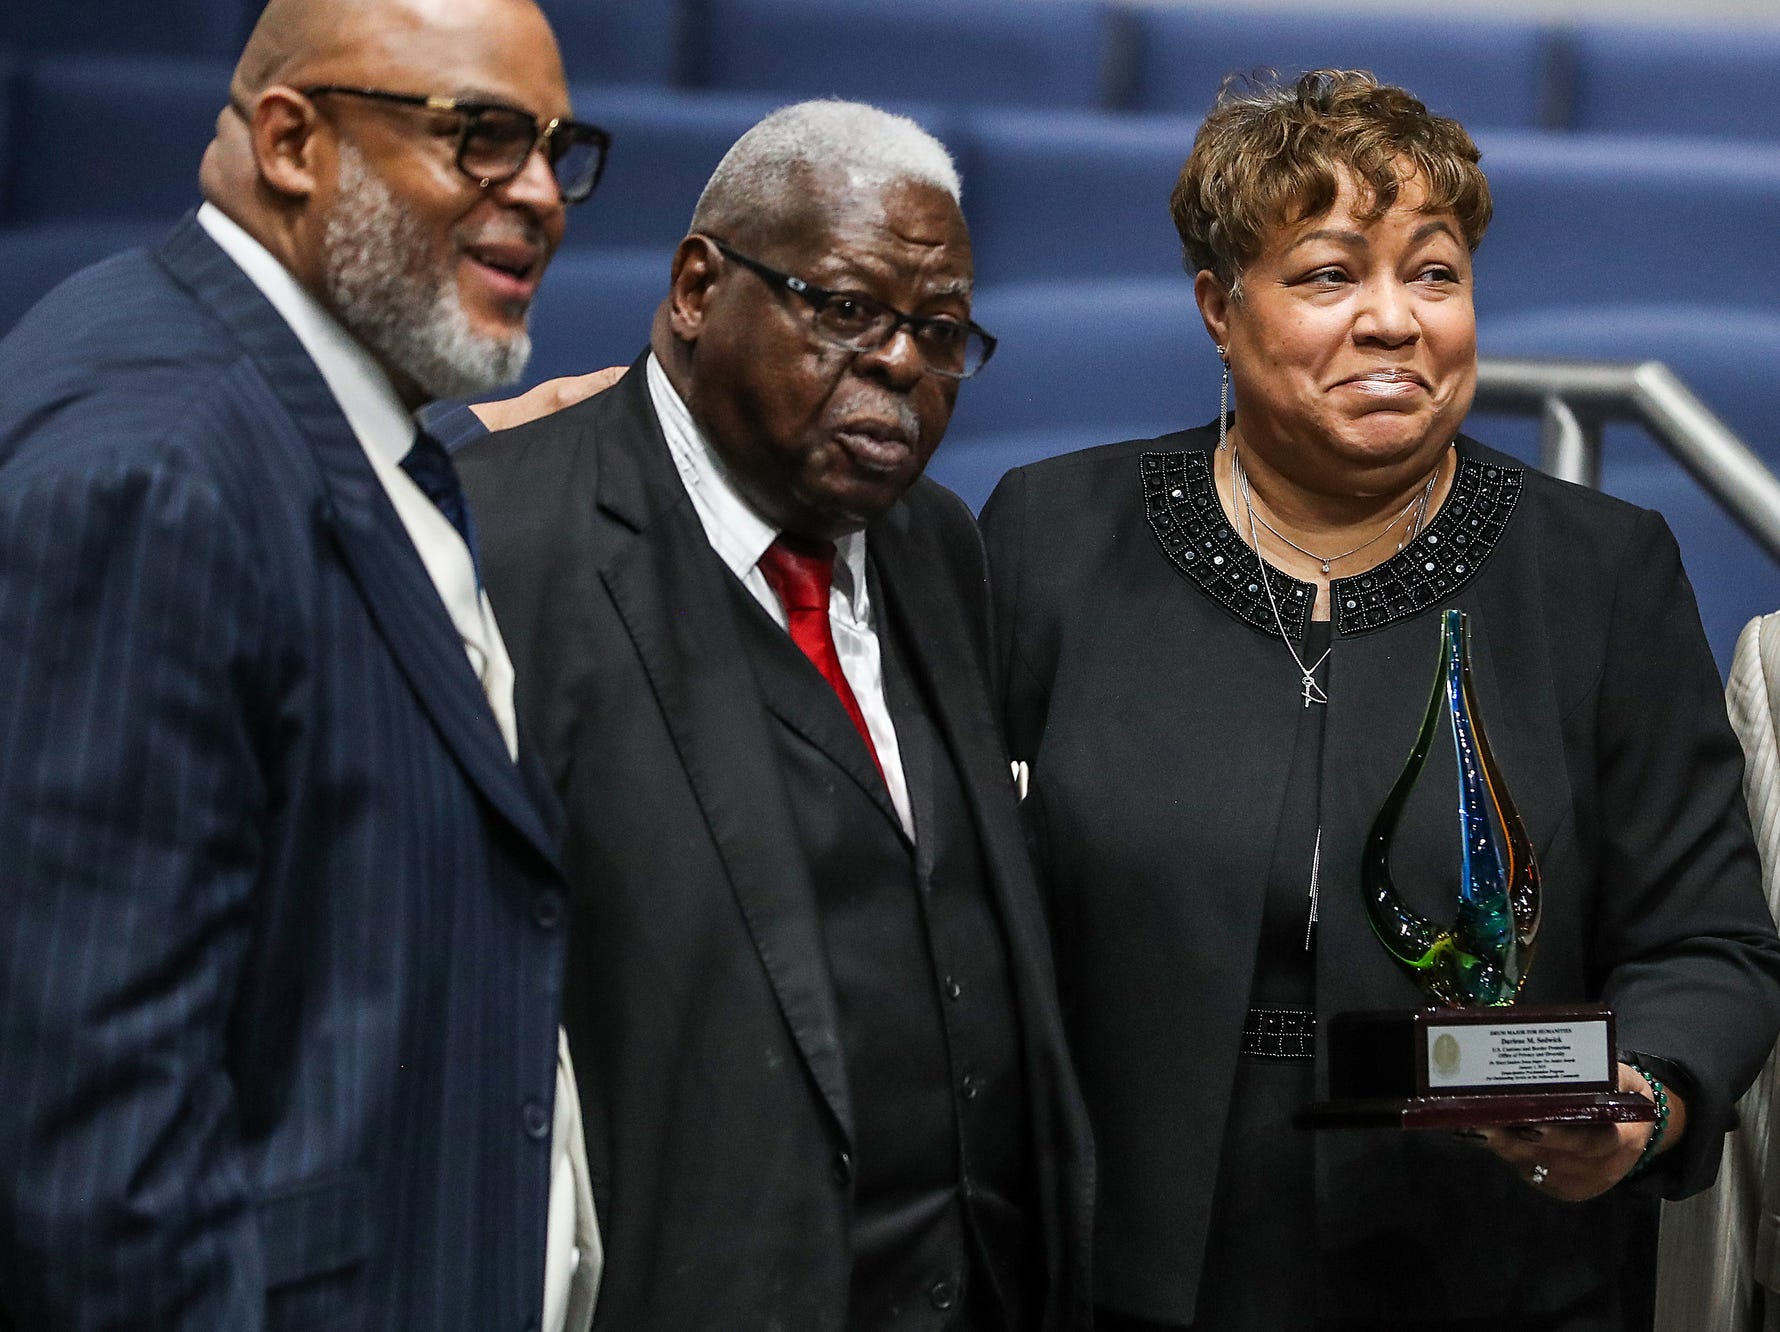 From left, Rev. Dr. Wayne Moore, Rev. Dr. Fitzhugh Lyons and Darlene Sedwick pose for a photo after Sedwick received the Drum Major for Humanities Award, during a service celebrating the anniversary of the Emancipation Proclamation at Olivet Missionary Baptist Church in Indianapolis, Tuesday, Jan. 1, 2019. Sedwick is director of the Office of Privacy and Diversity at U.S. Customs and Border Protection in Indianapolis.